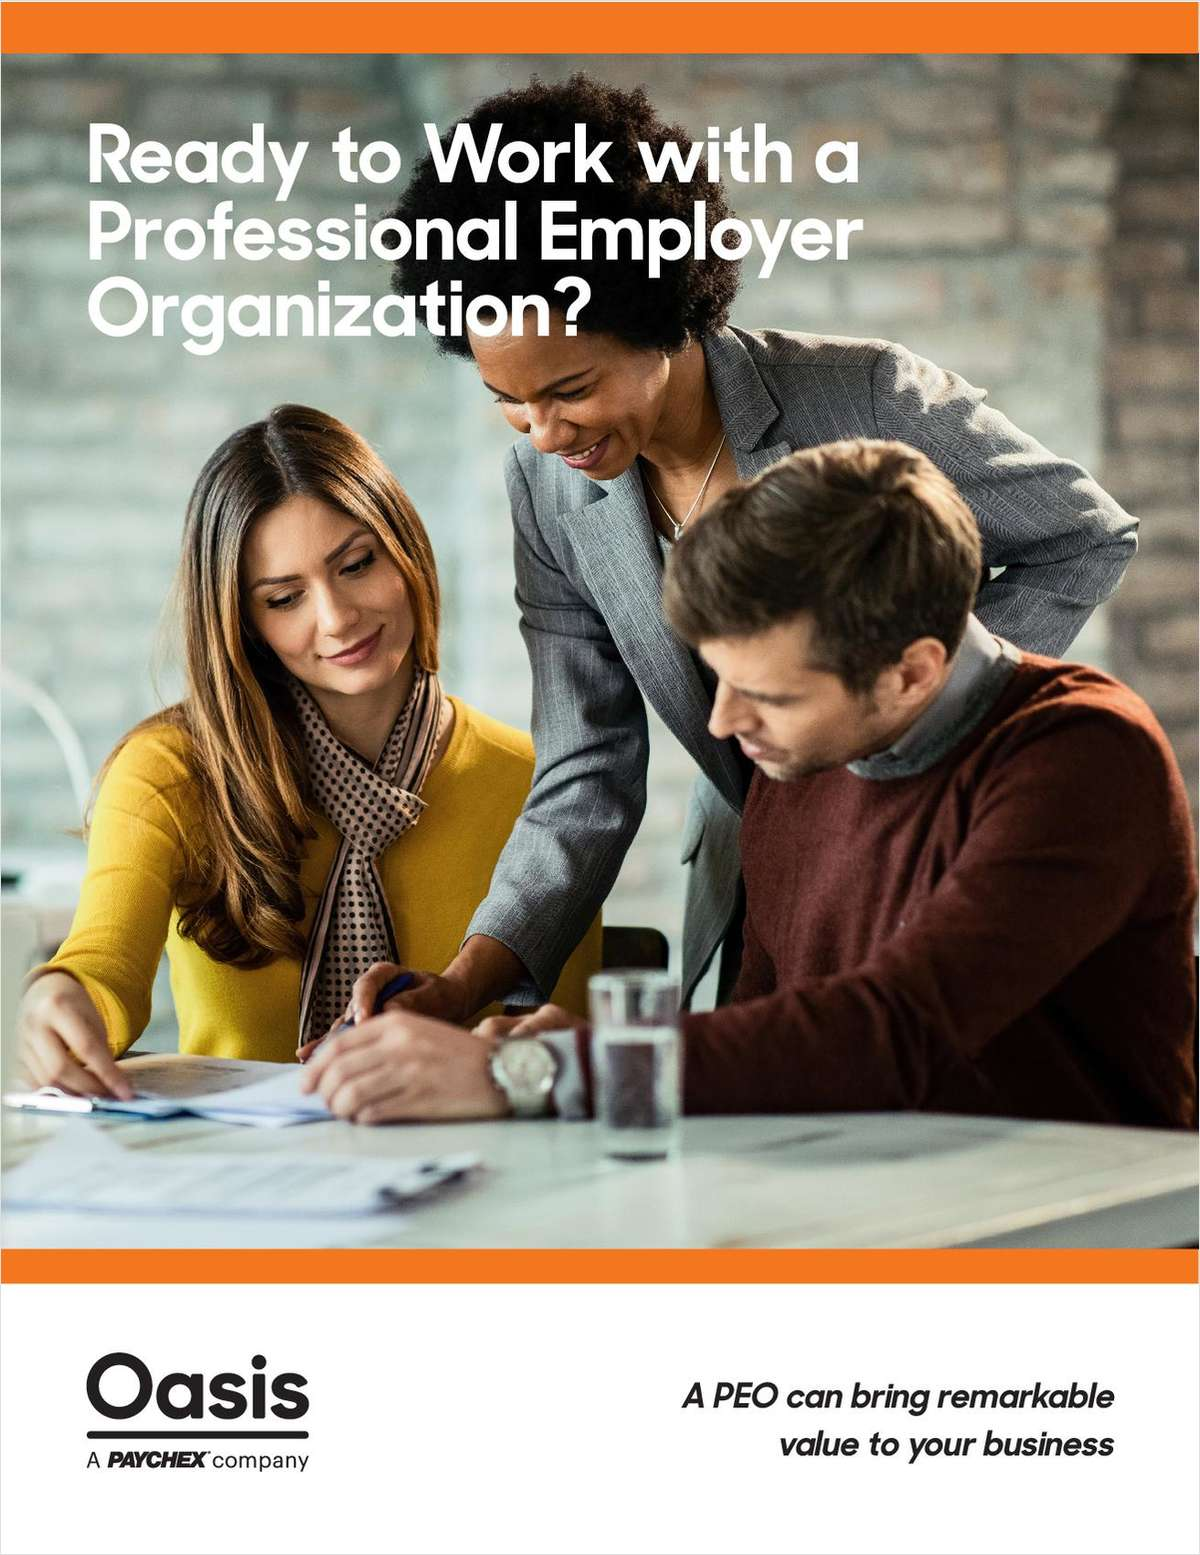 Time to Work with a Professional Employer Organization?